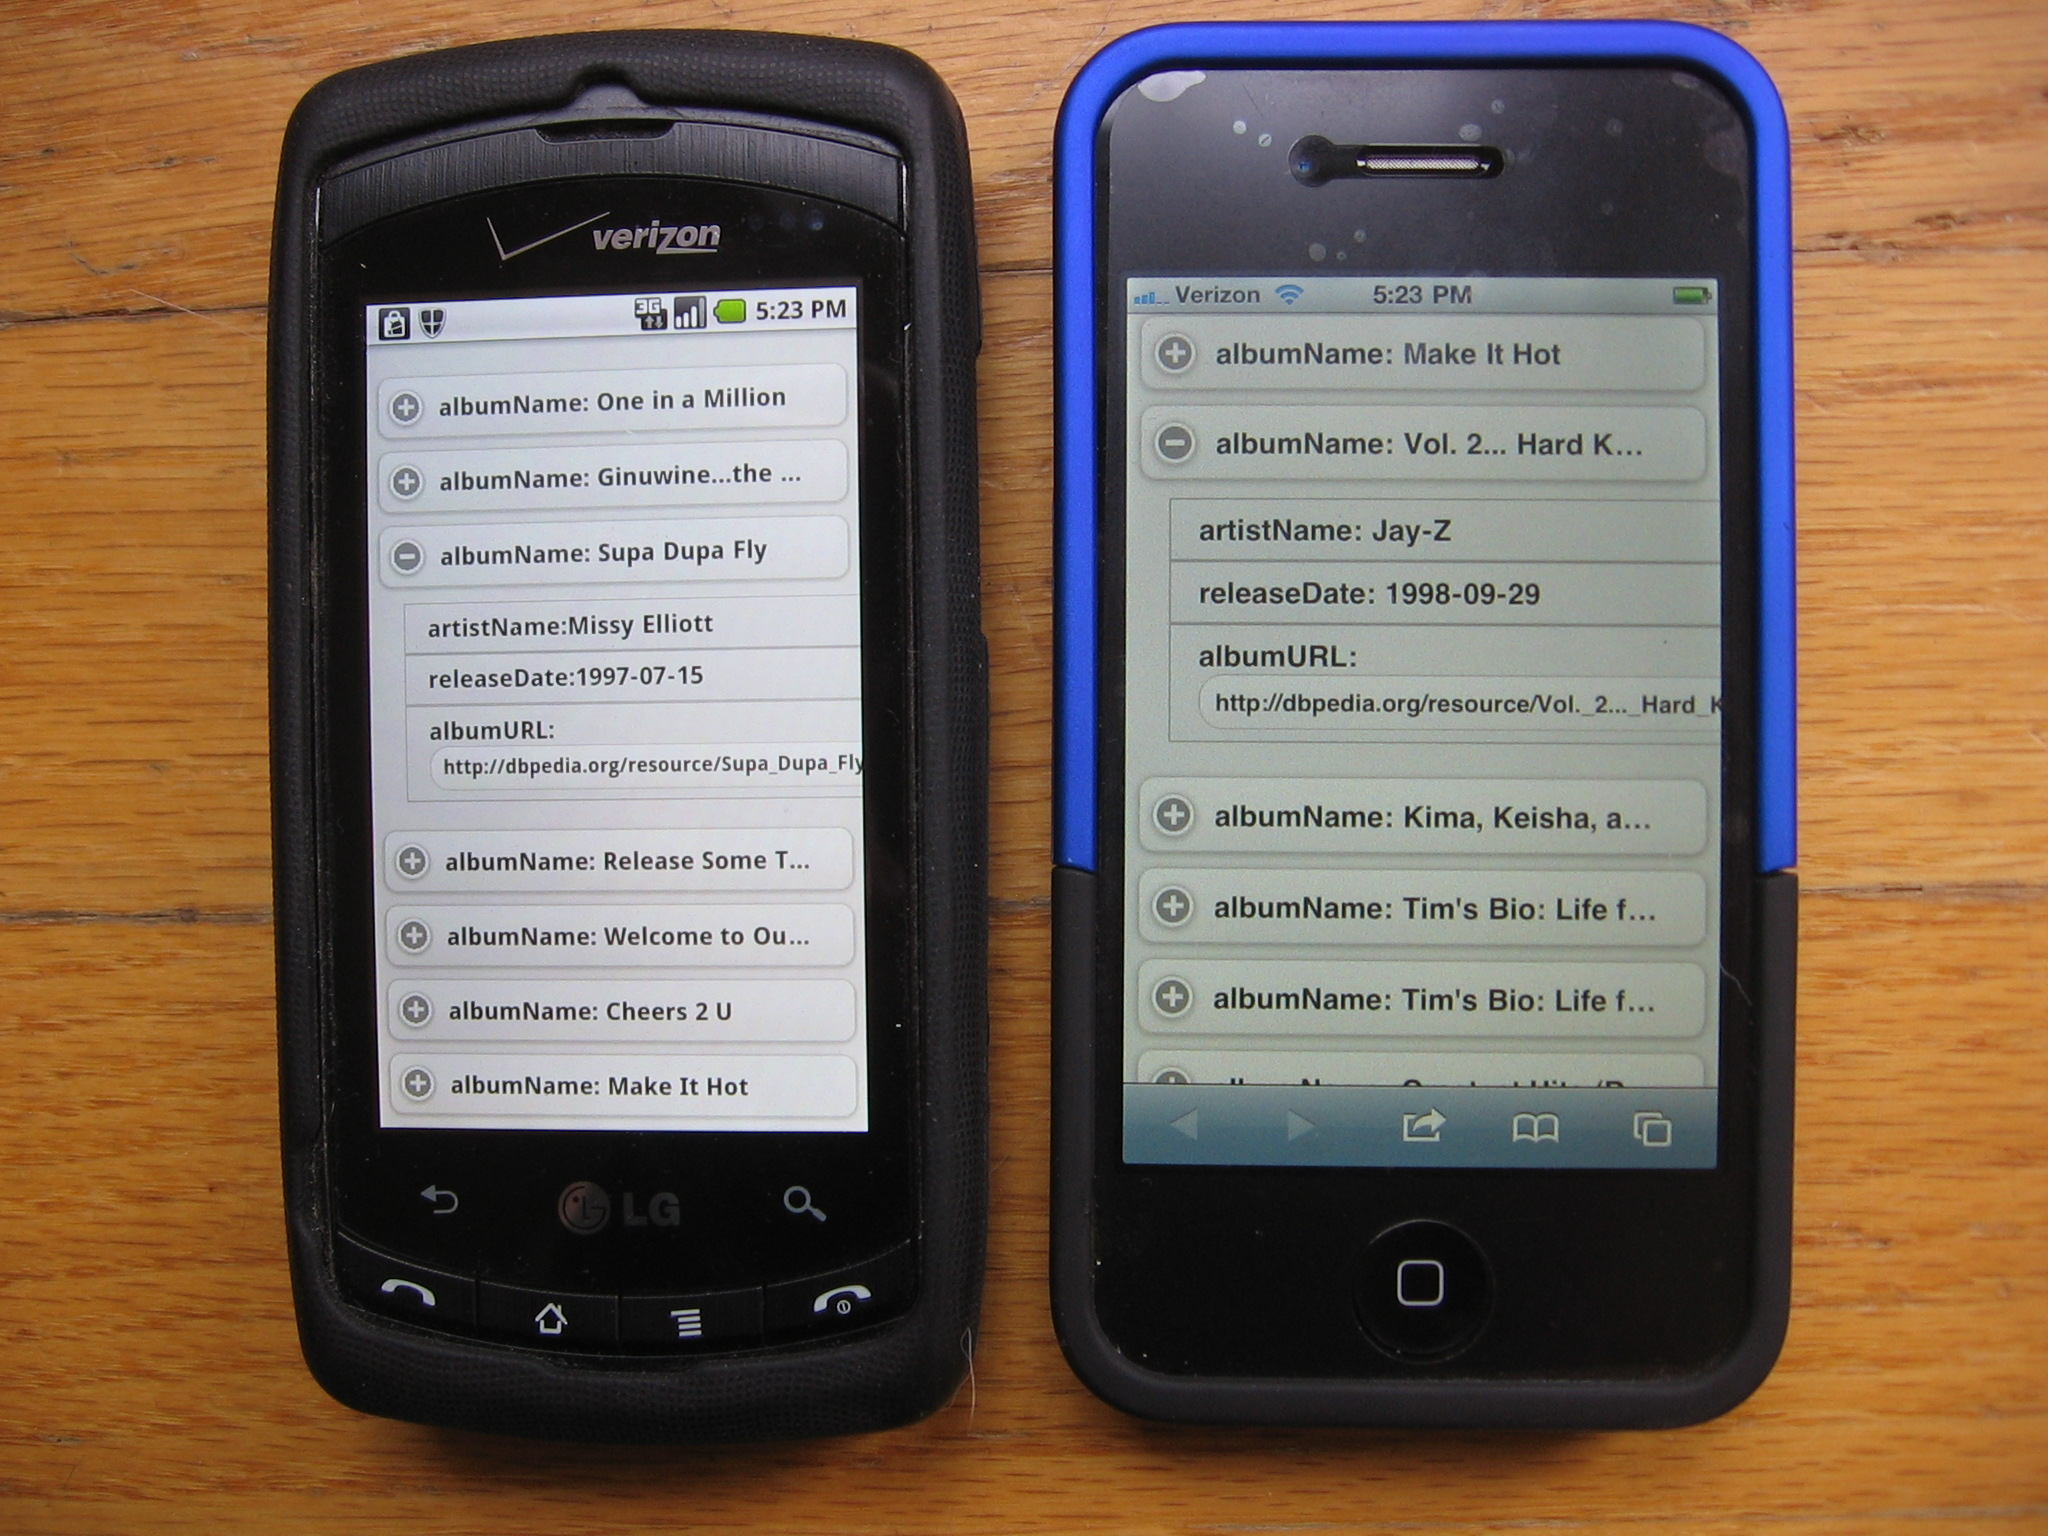 Android LG Ally and iPhone showing SPARQL results